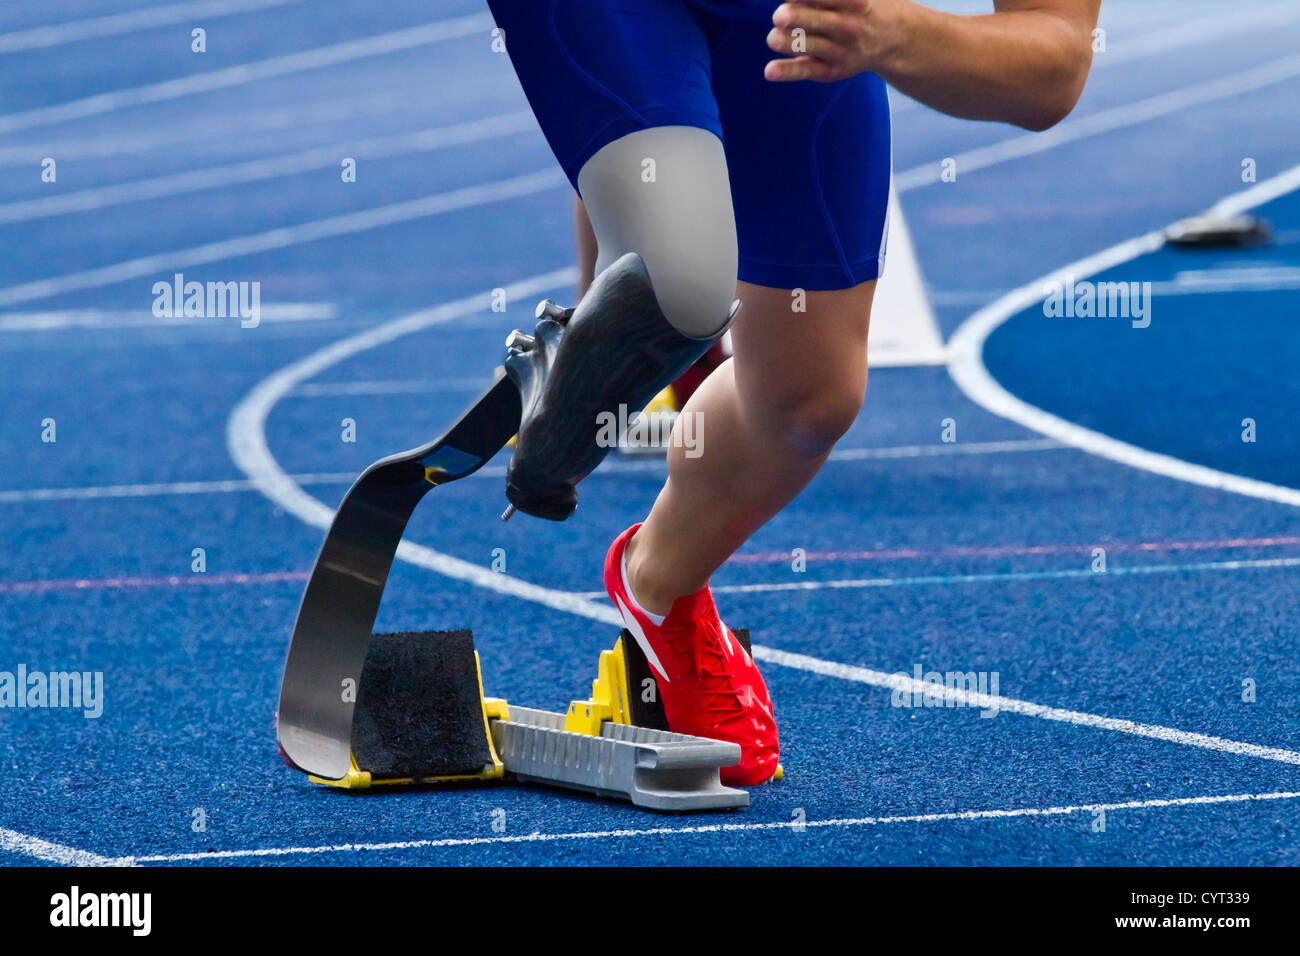 athlete with handicap starts the race - Stock Image